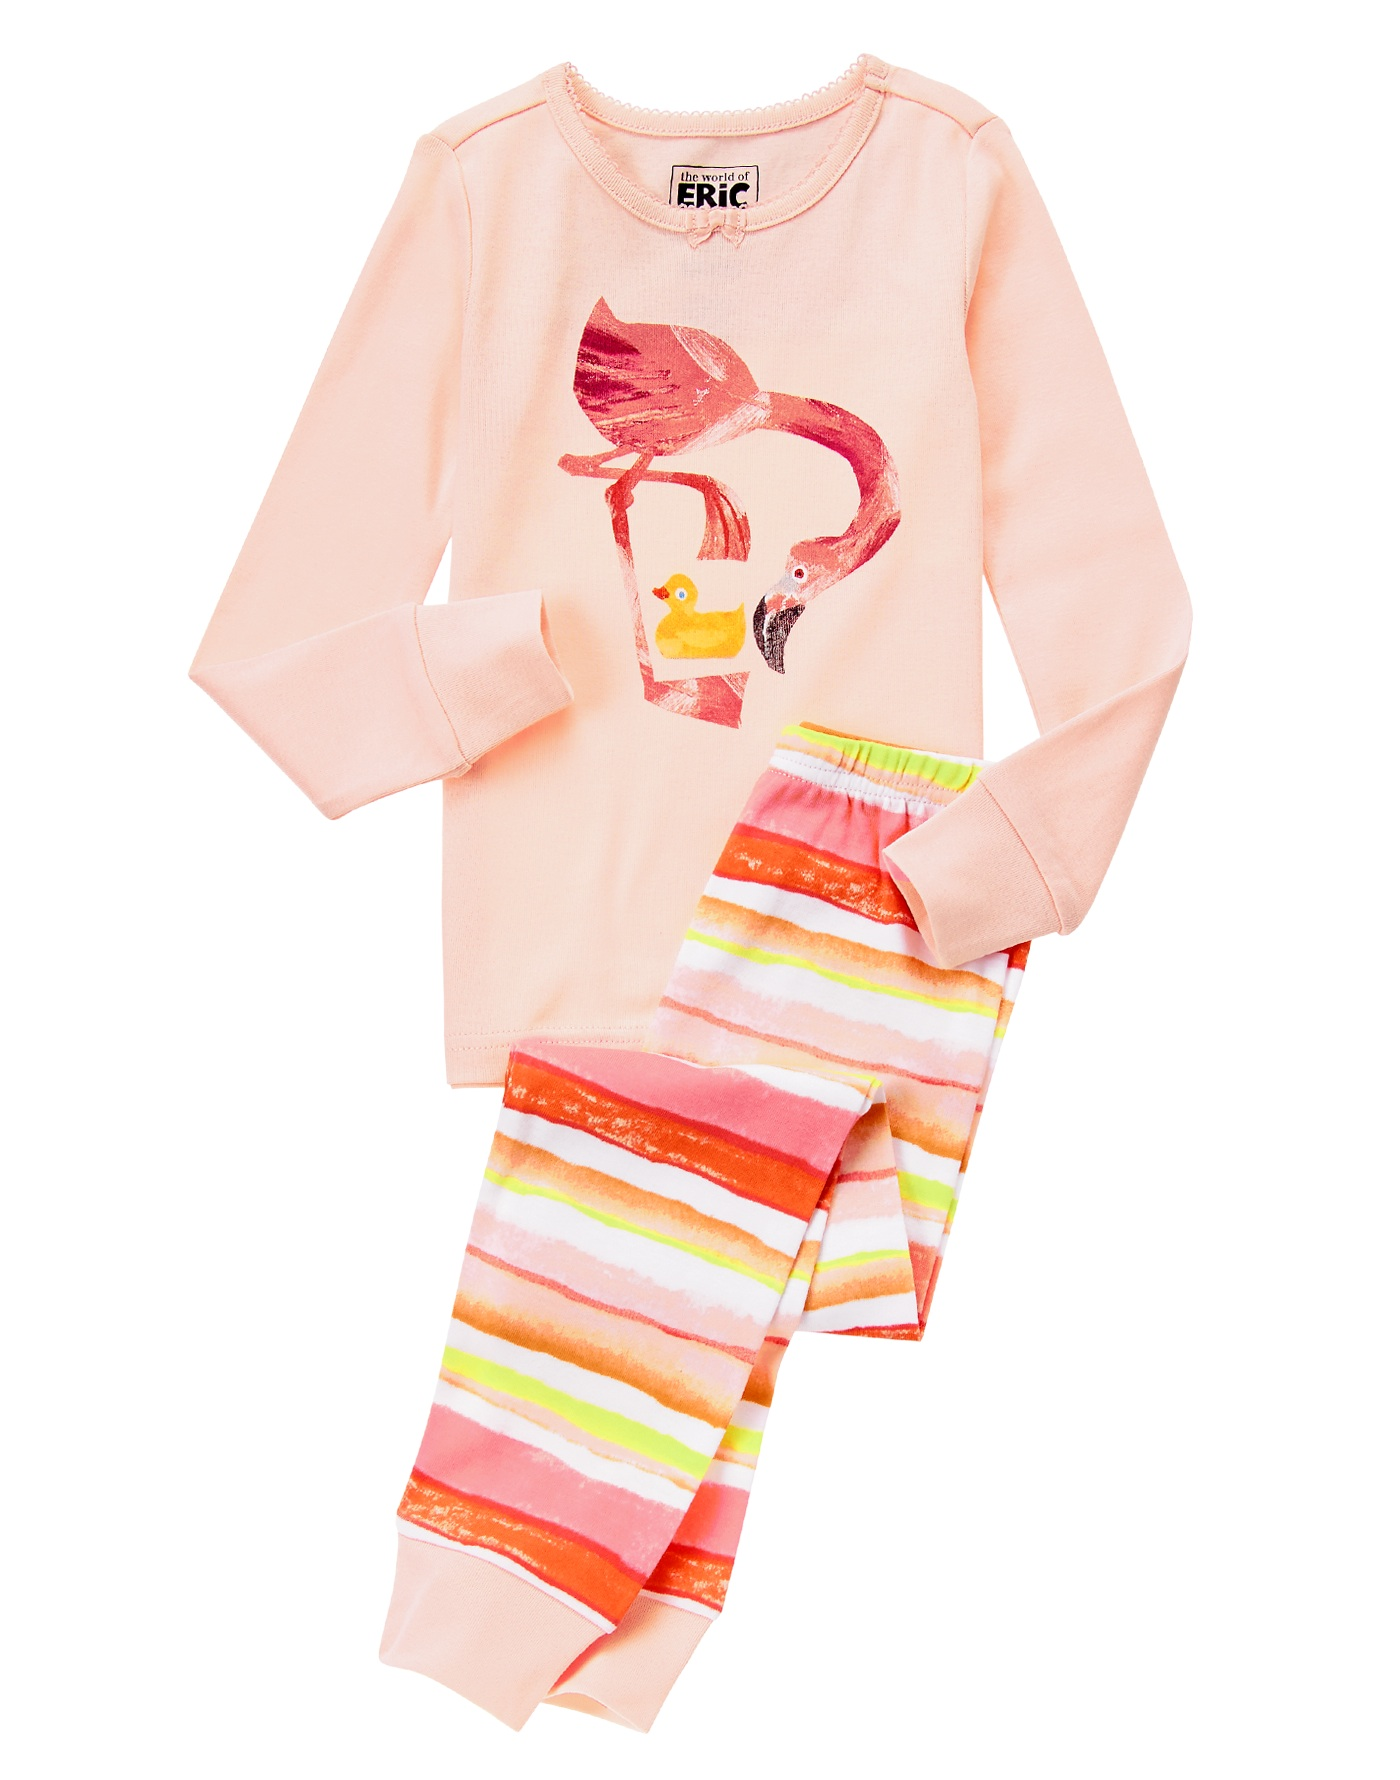 The World of Eric Carle Flamingo jammies